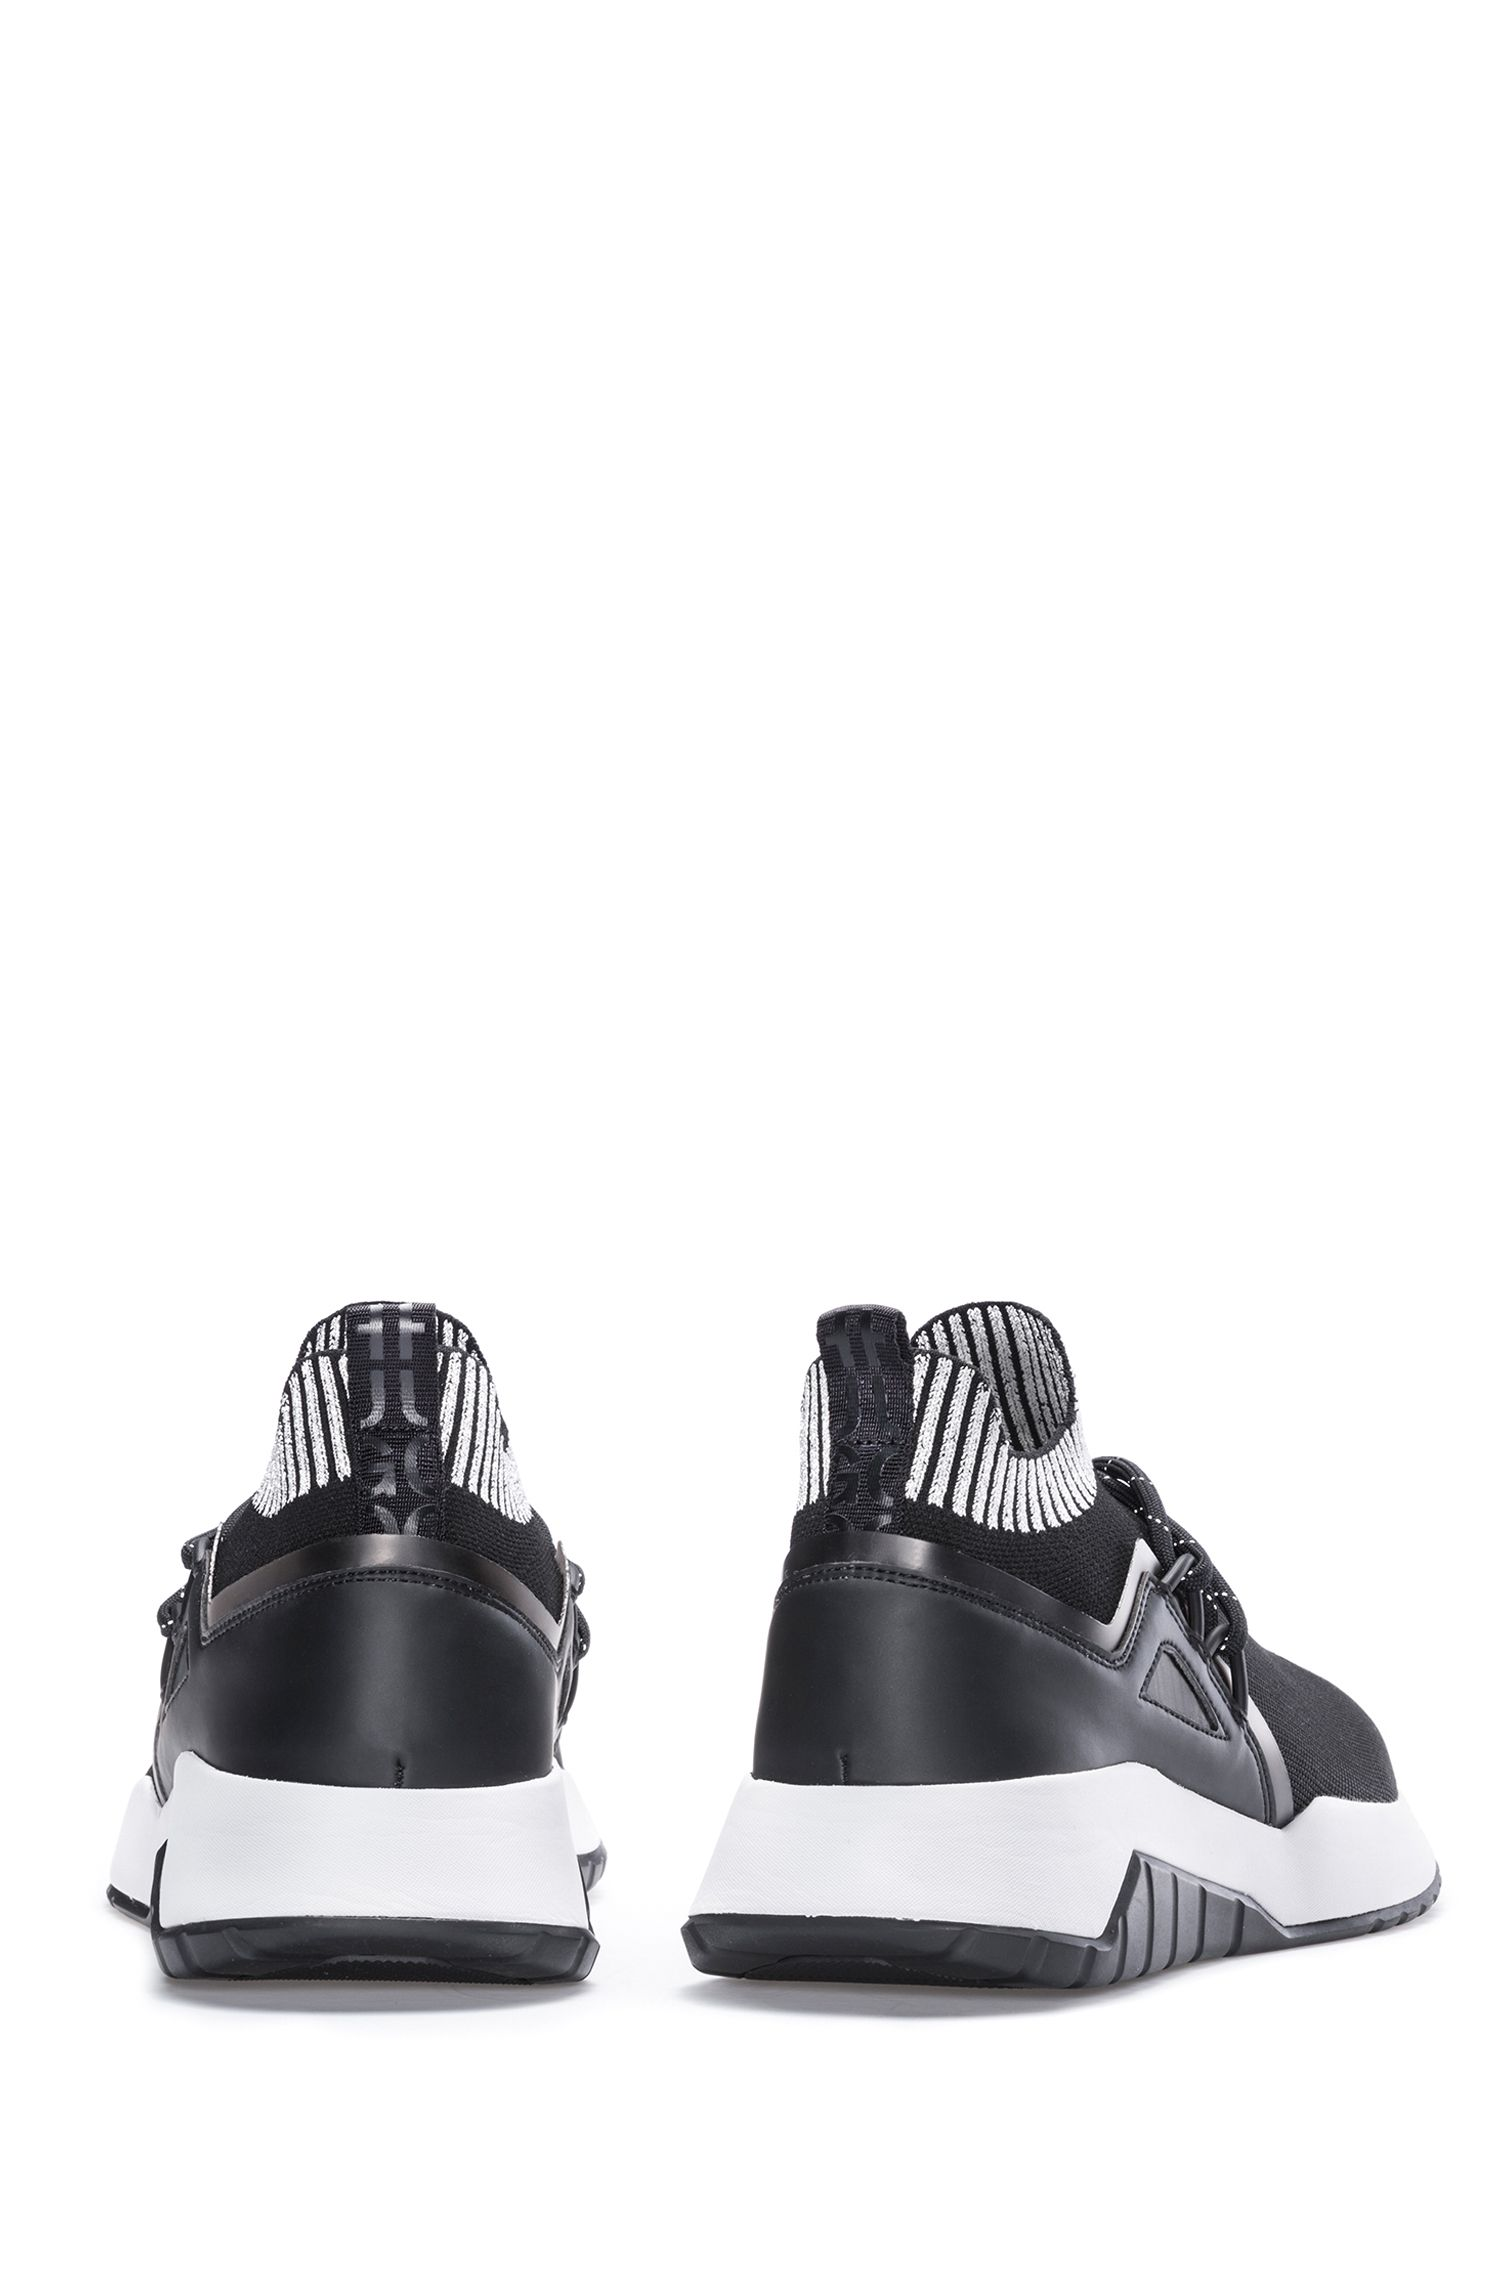 Reflective-logo sneakers with knitted sock, Black